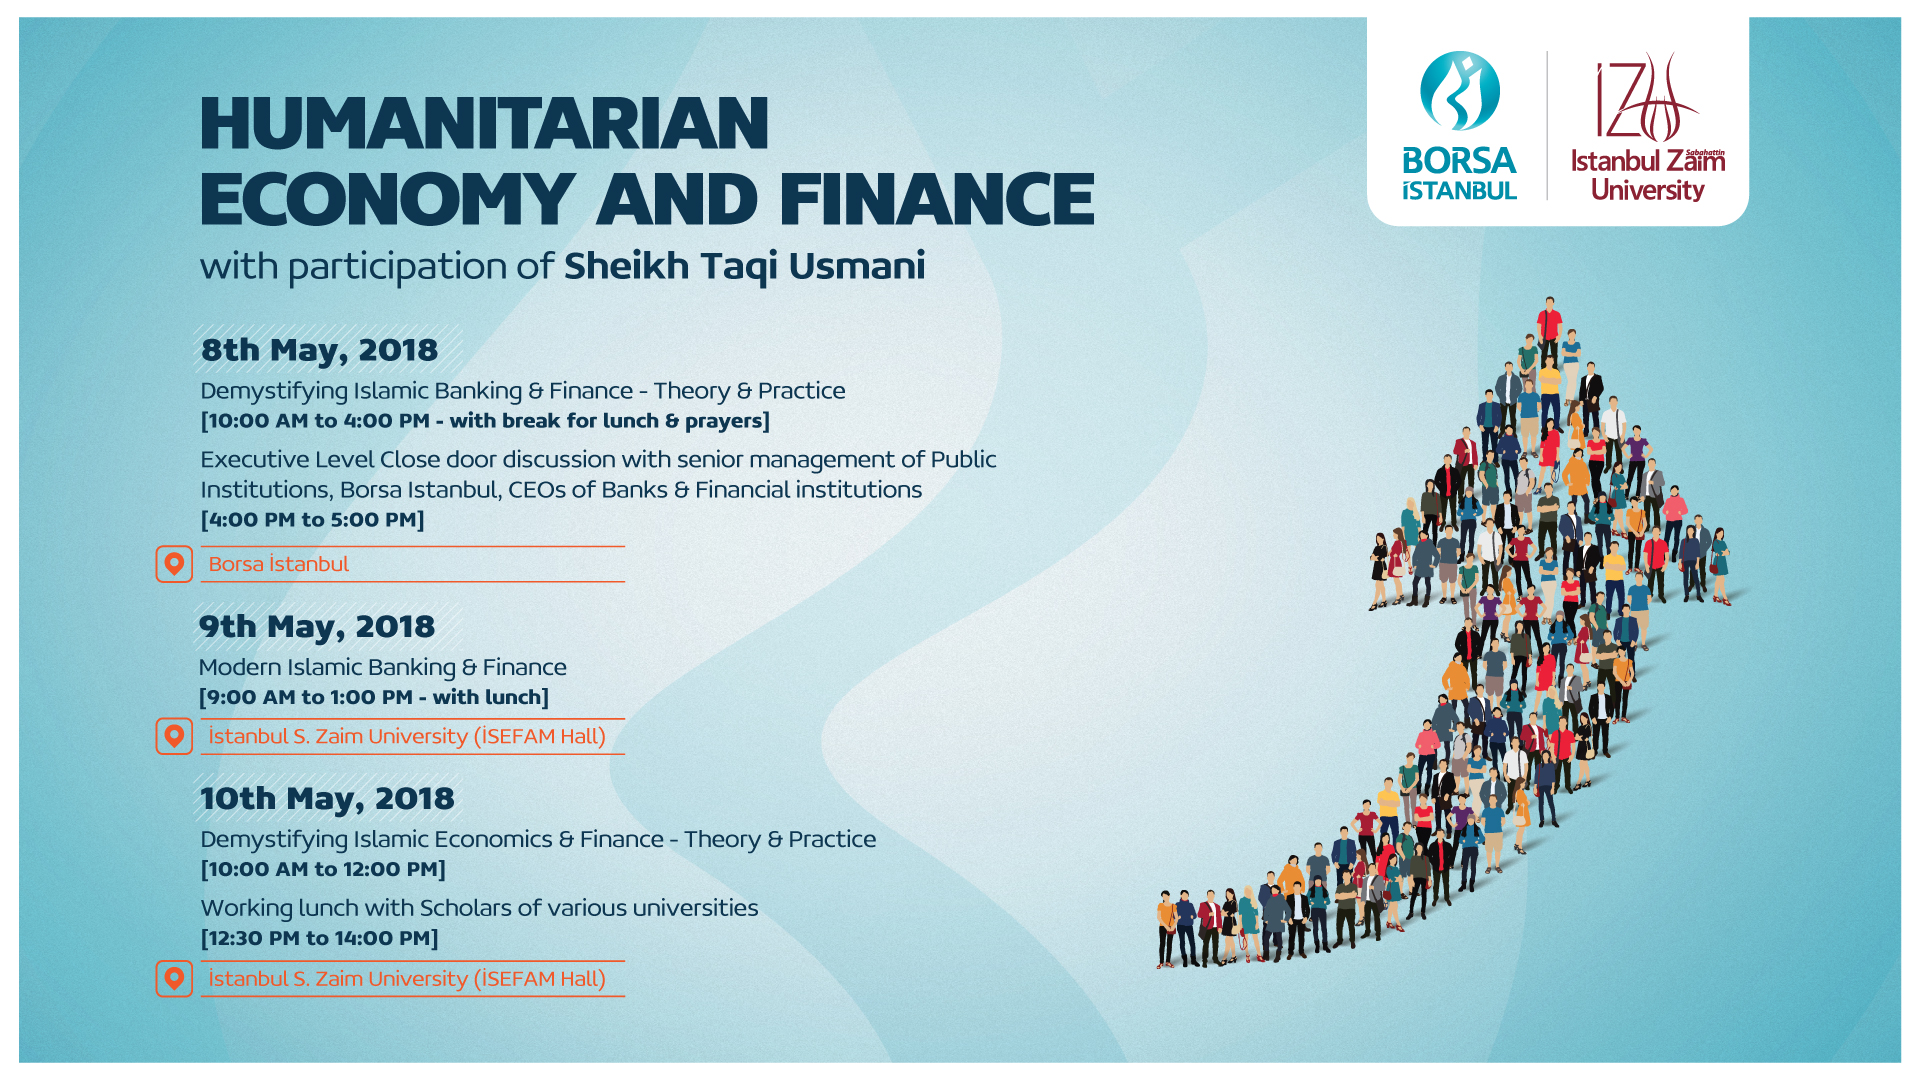 Humanitarian Economy and Finance